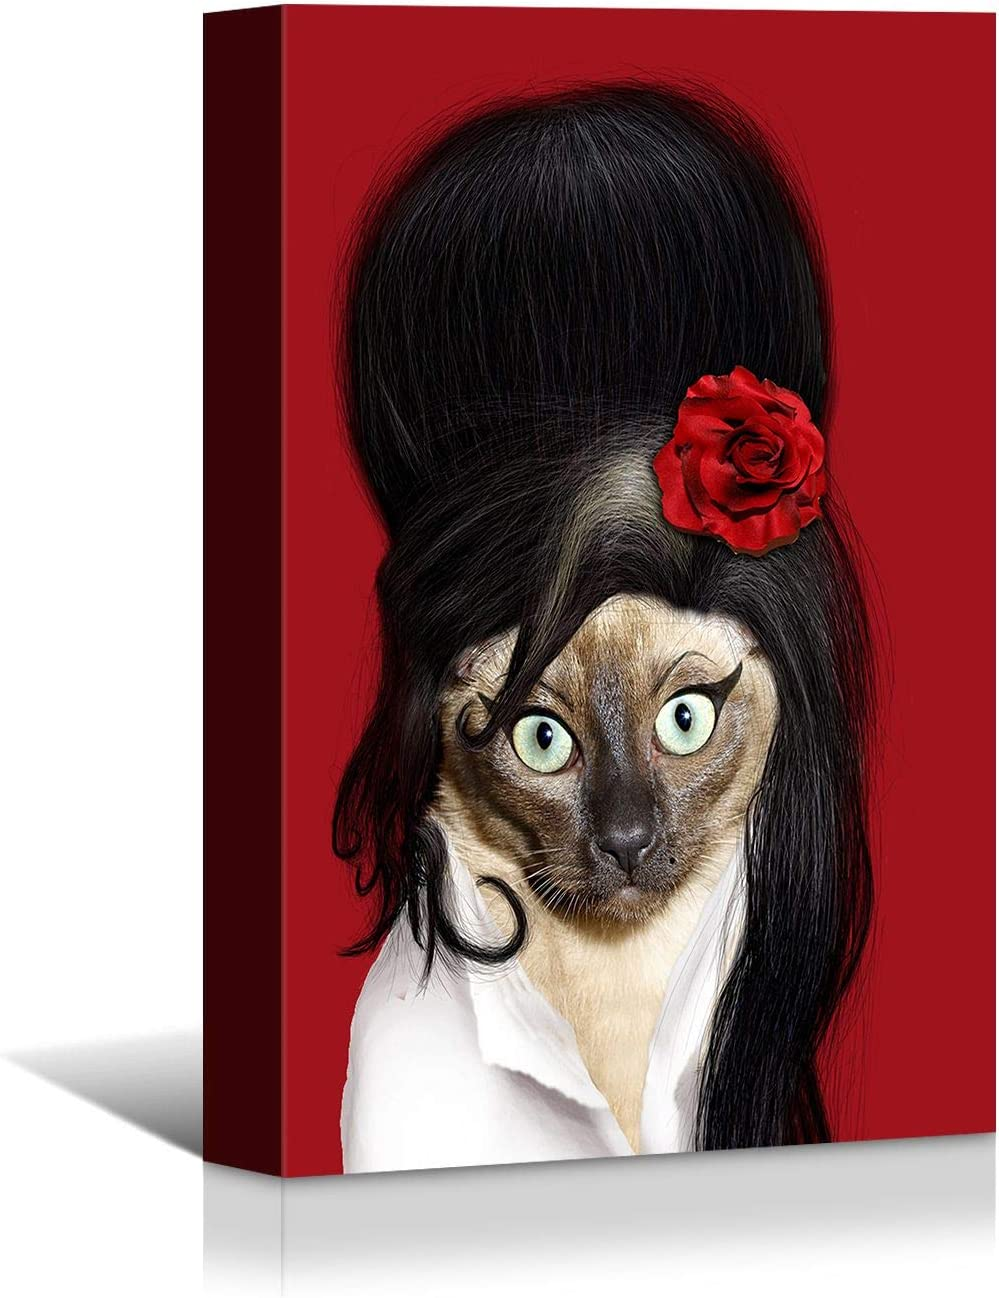 Looife Animal Canvas Wall Art, 12x16 Inch Funny Cat Amy Winehouse Idol Star Portrait Picture Prints Wall Decor, Modern Art Deco for Home & Nursery Decoration, Ready to Hang